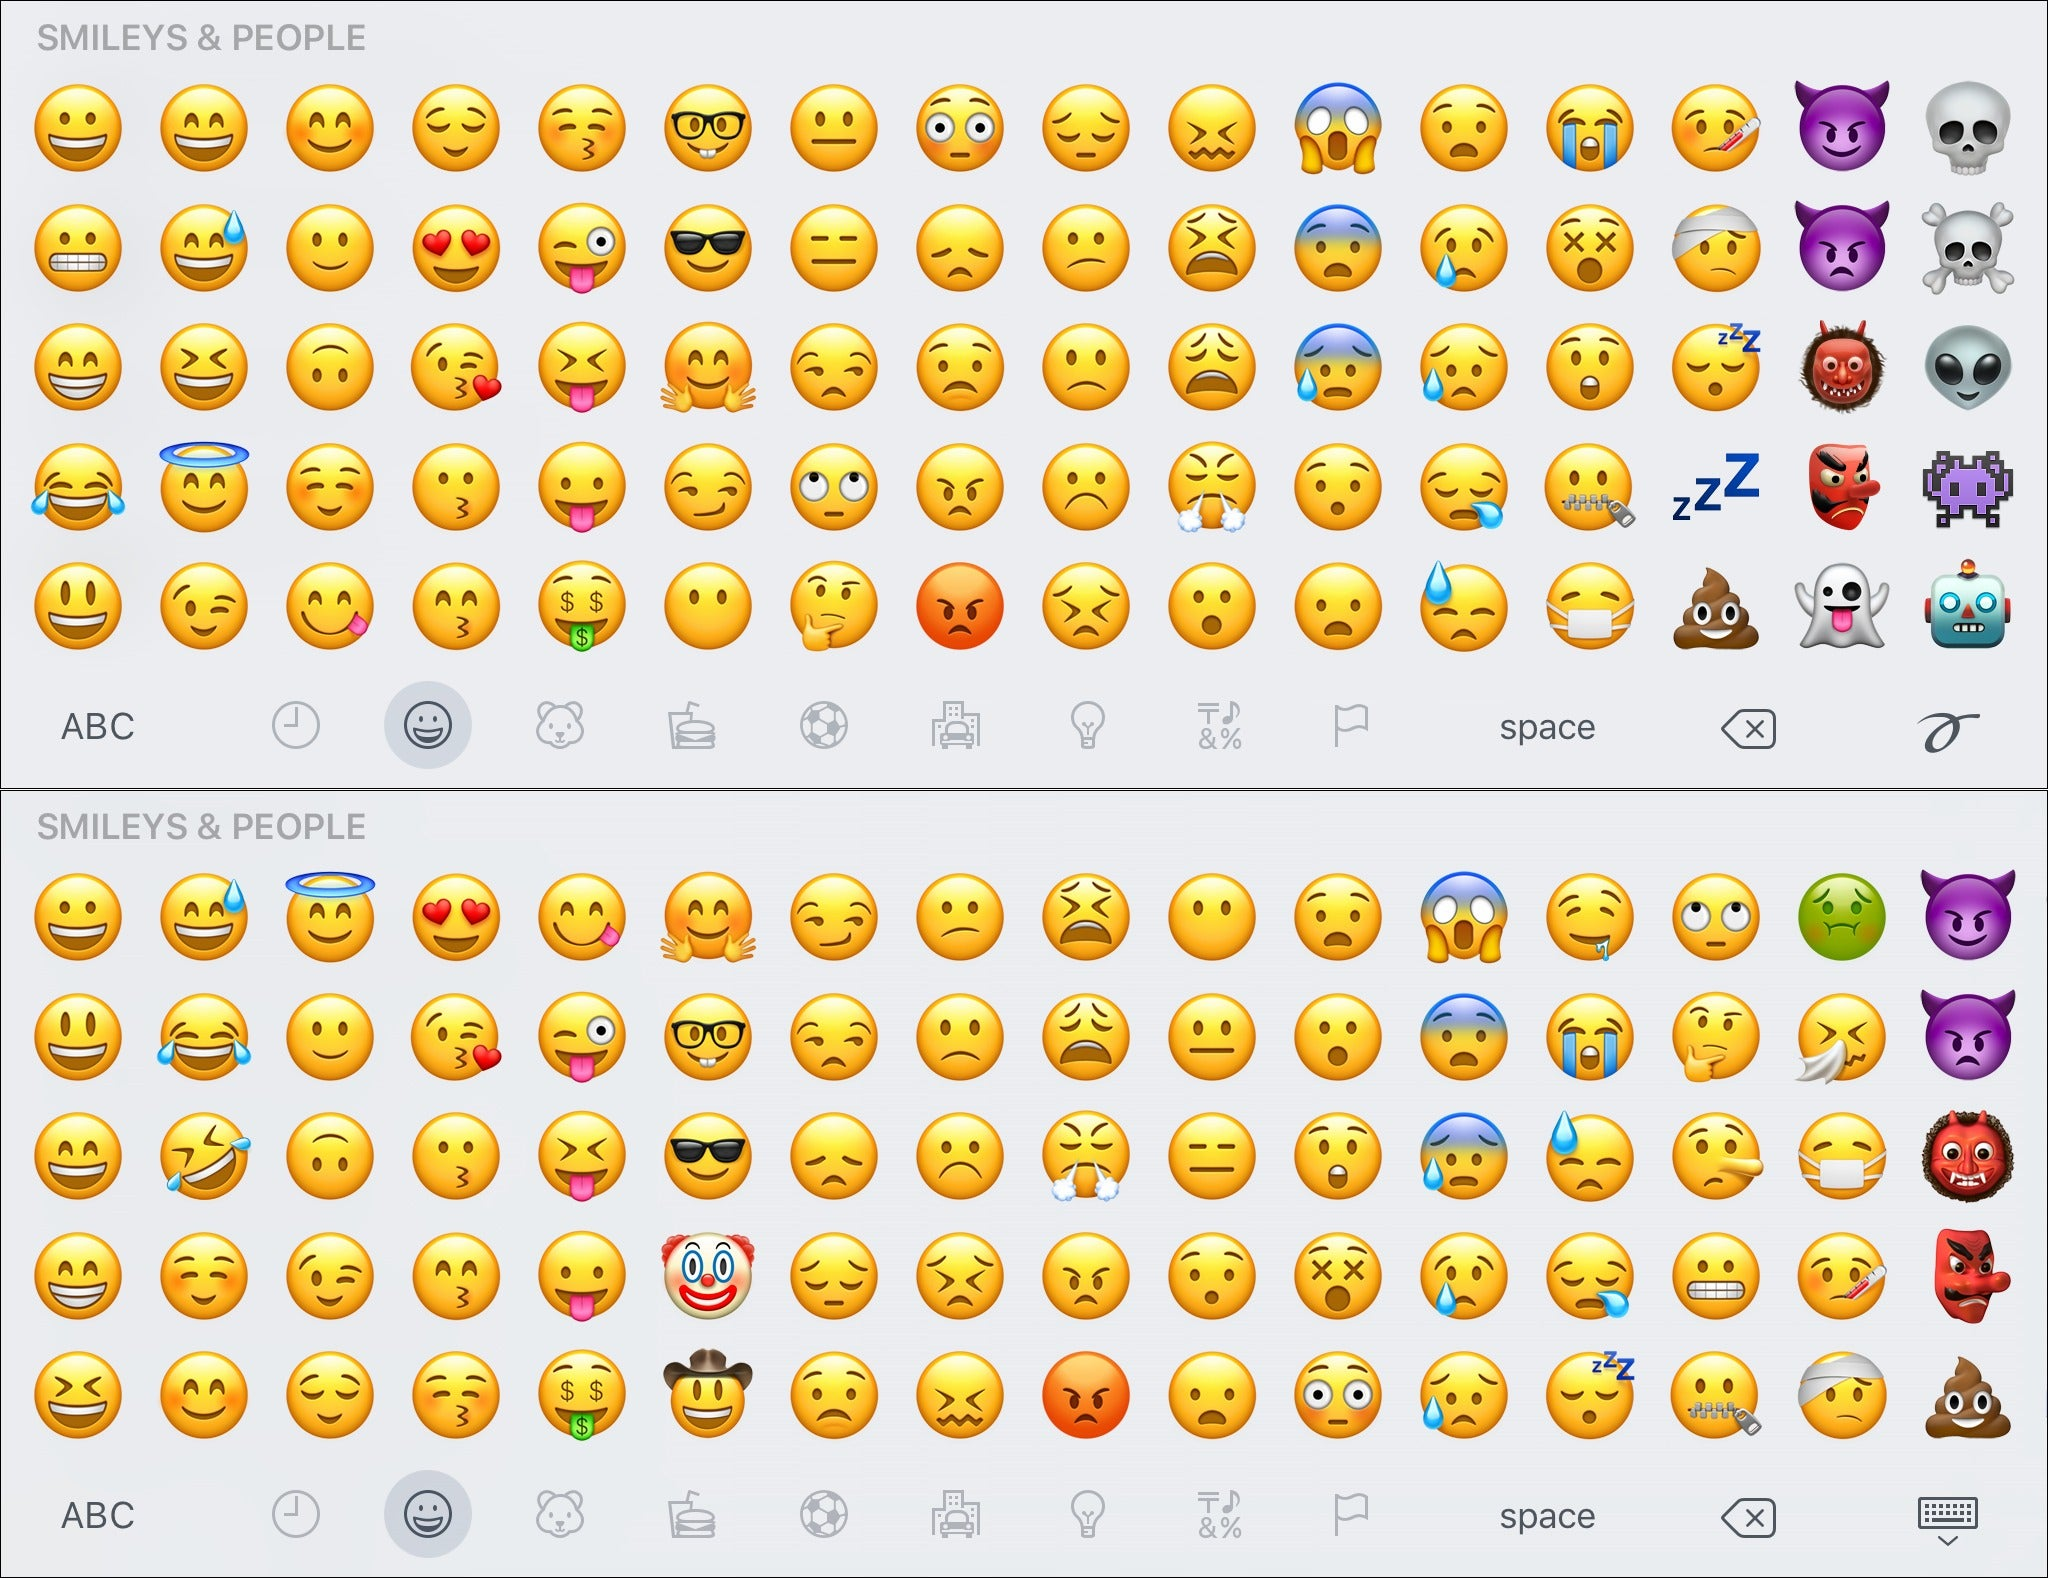 Check Out Every Single New Emoji In IOS Macworld - Emojis created real life still dont make sense